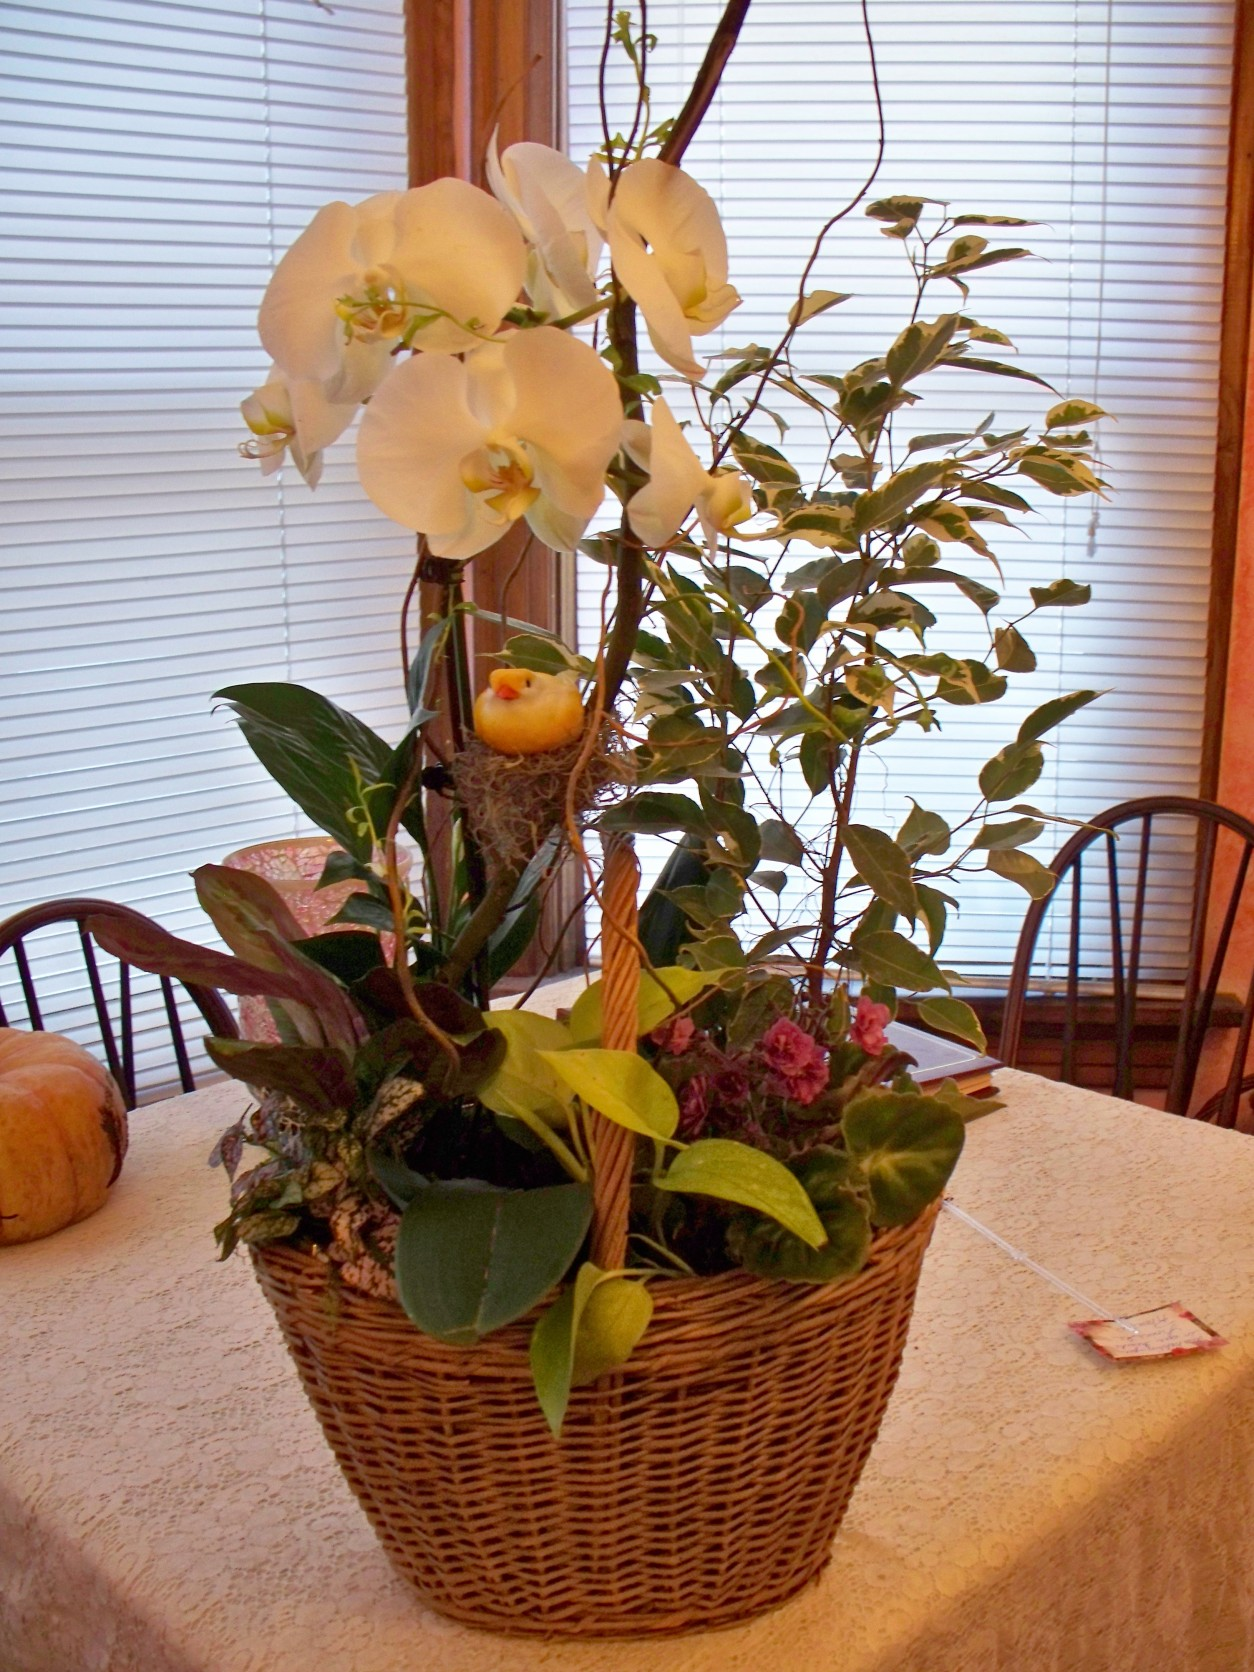 PAHALENOPSIS ORCHID BASKET GARDEN